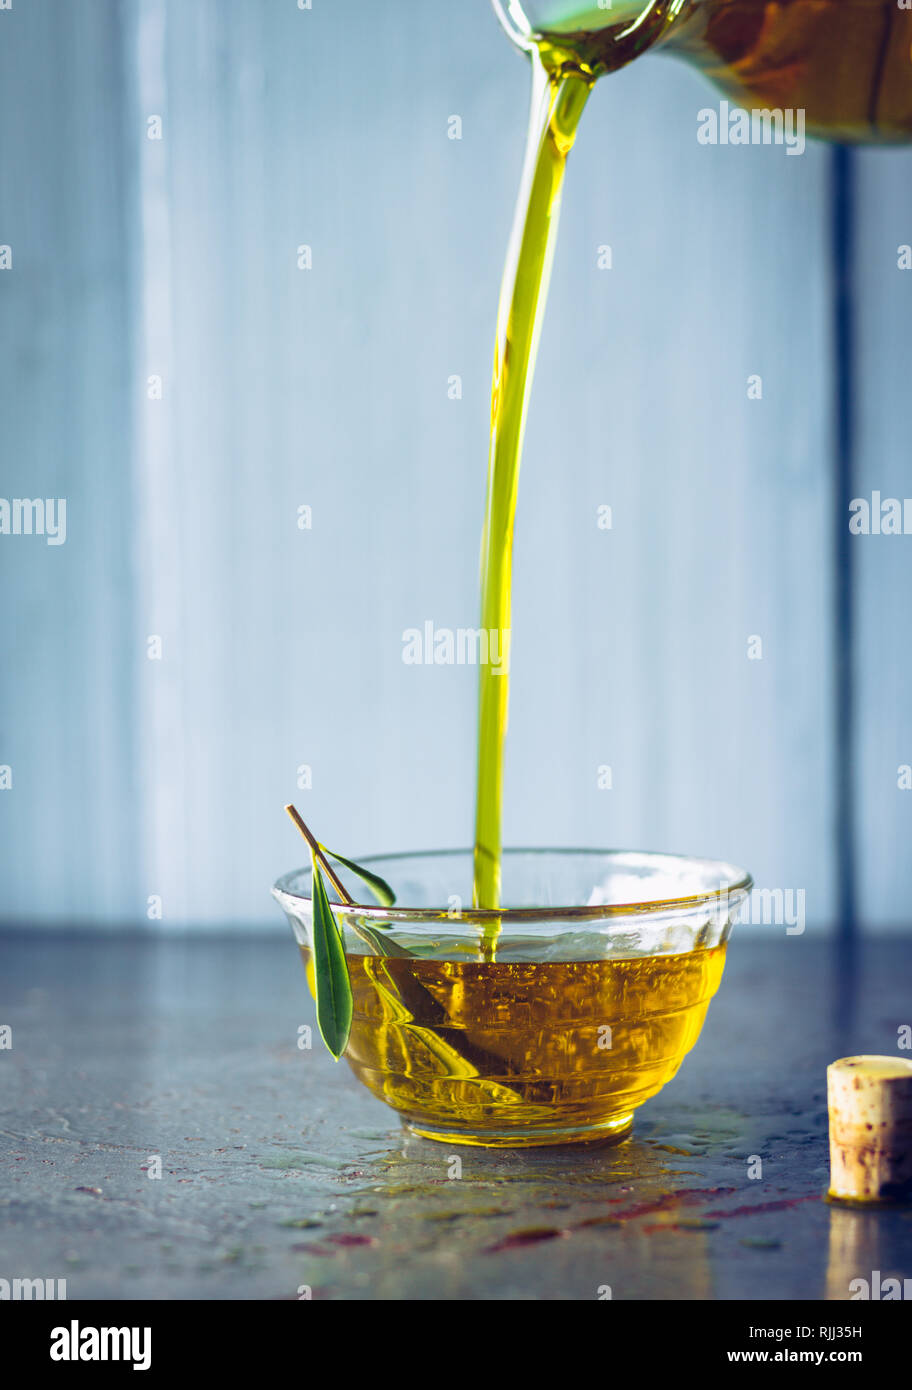 Pouring olive oil into glass bowl with olive twig - Stock Image